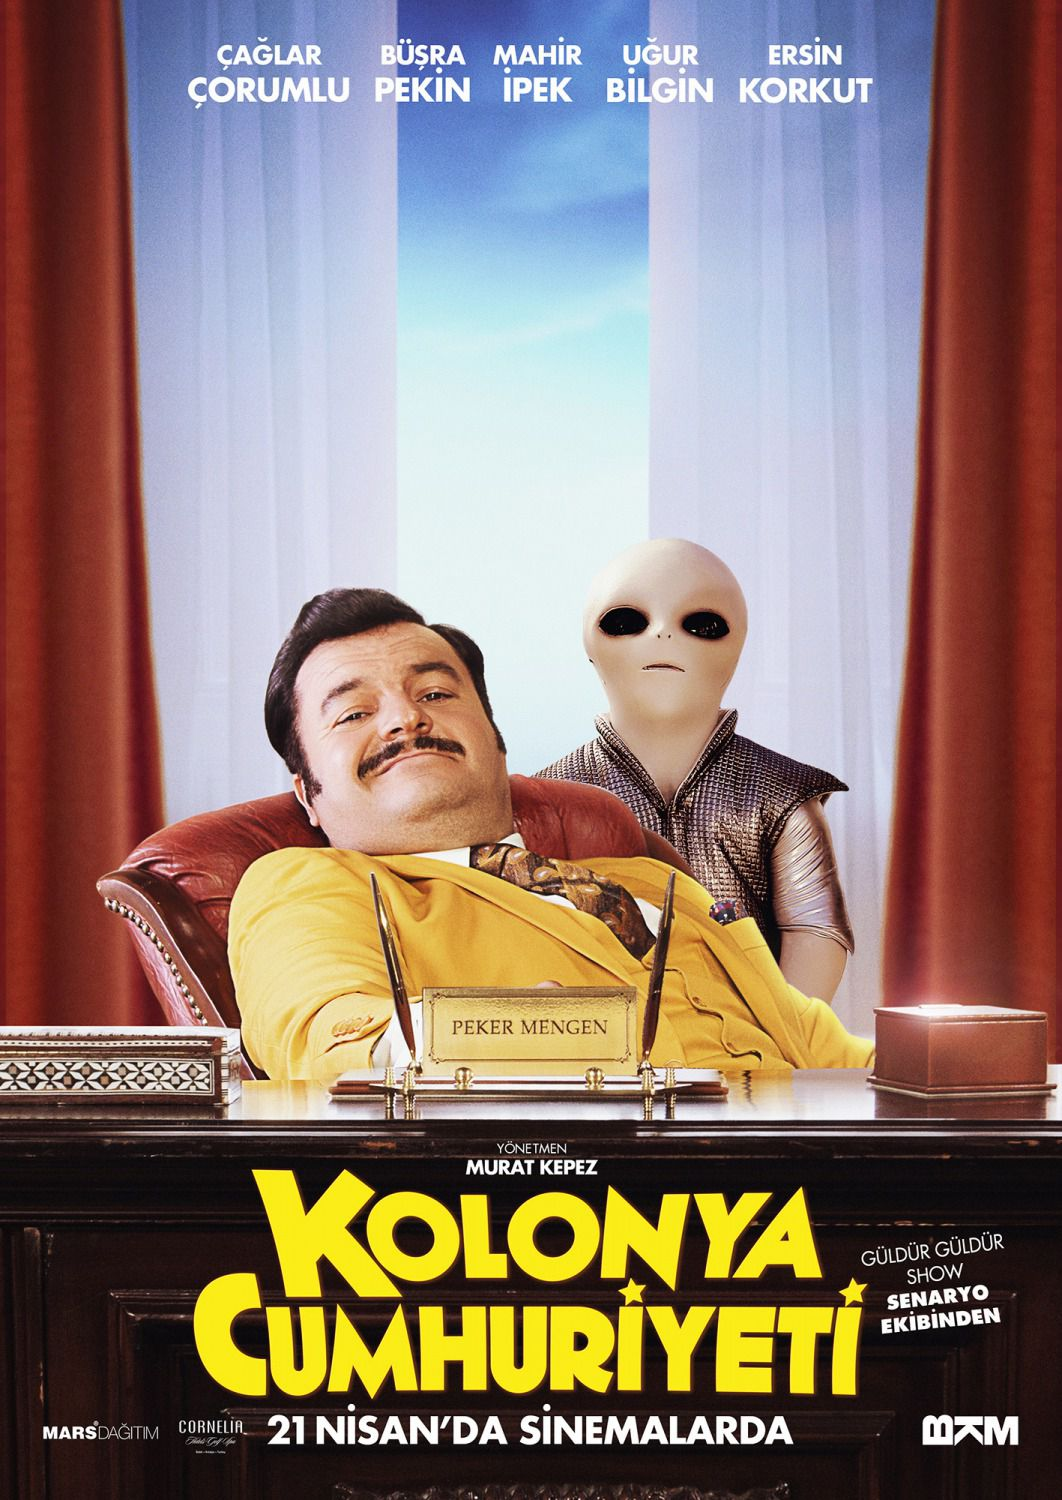 Kolonya Cumhuriyeti - Repubblica di Colonia - Republic of Cologne - alien film poster